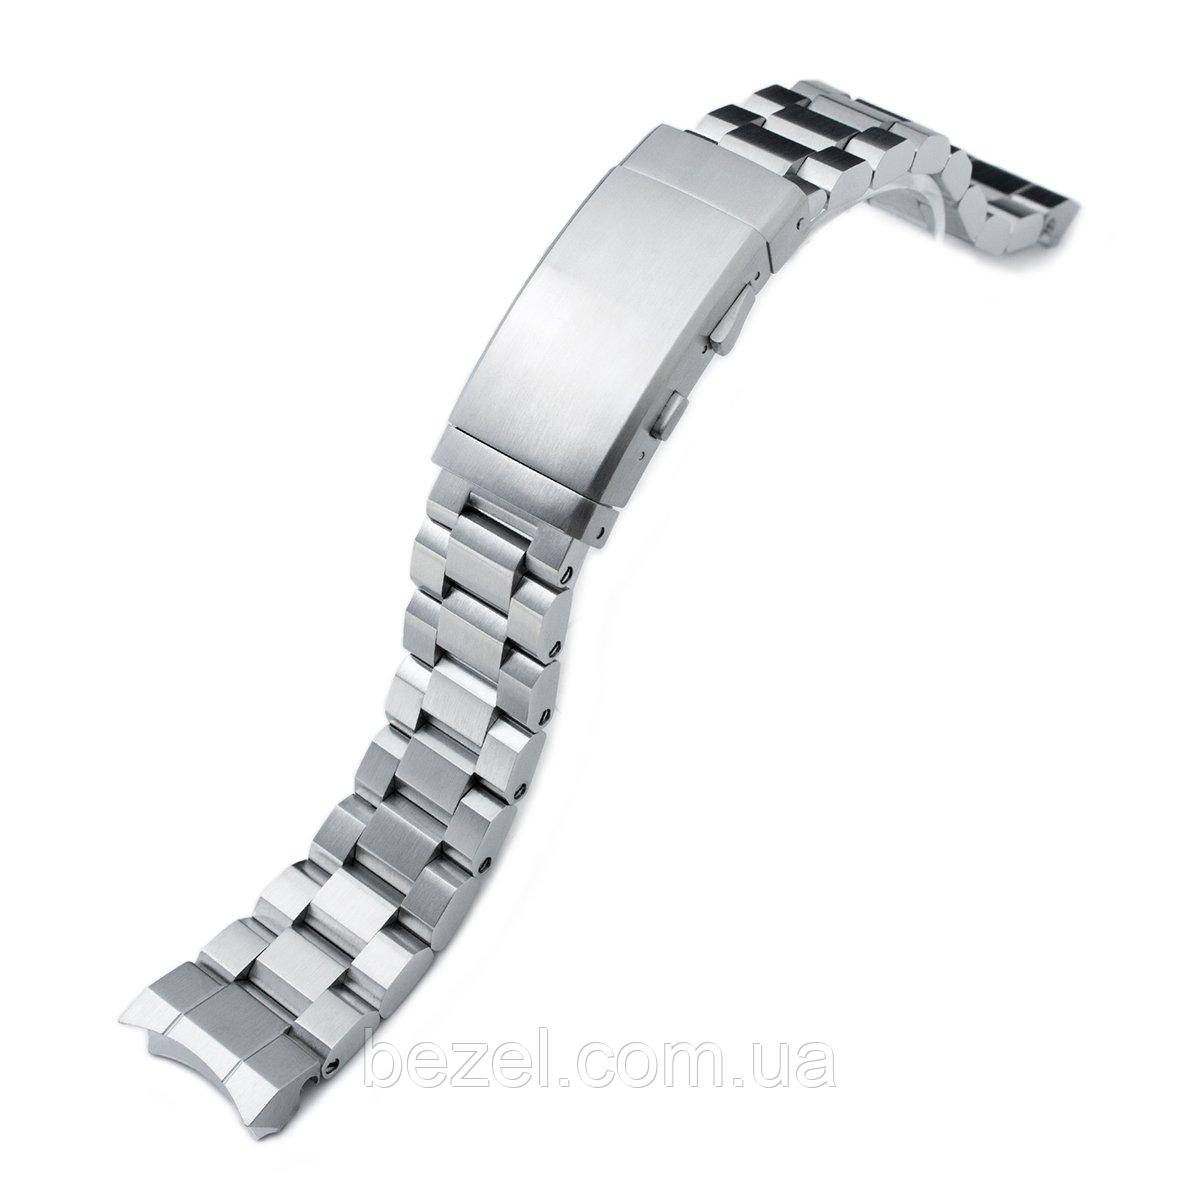 20mm Hexad Oyster 316L Stainless Steel Watch Band for Sumo SBDC001, Wetsuit Ratchet Buckle